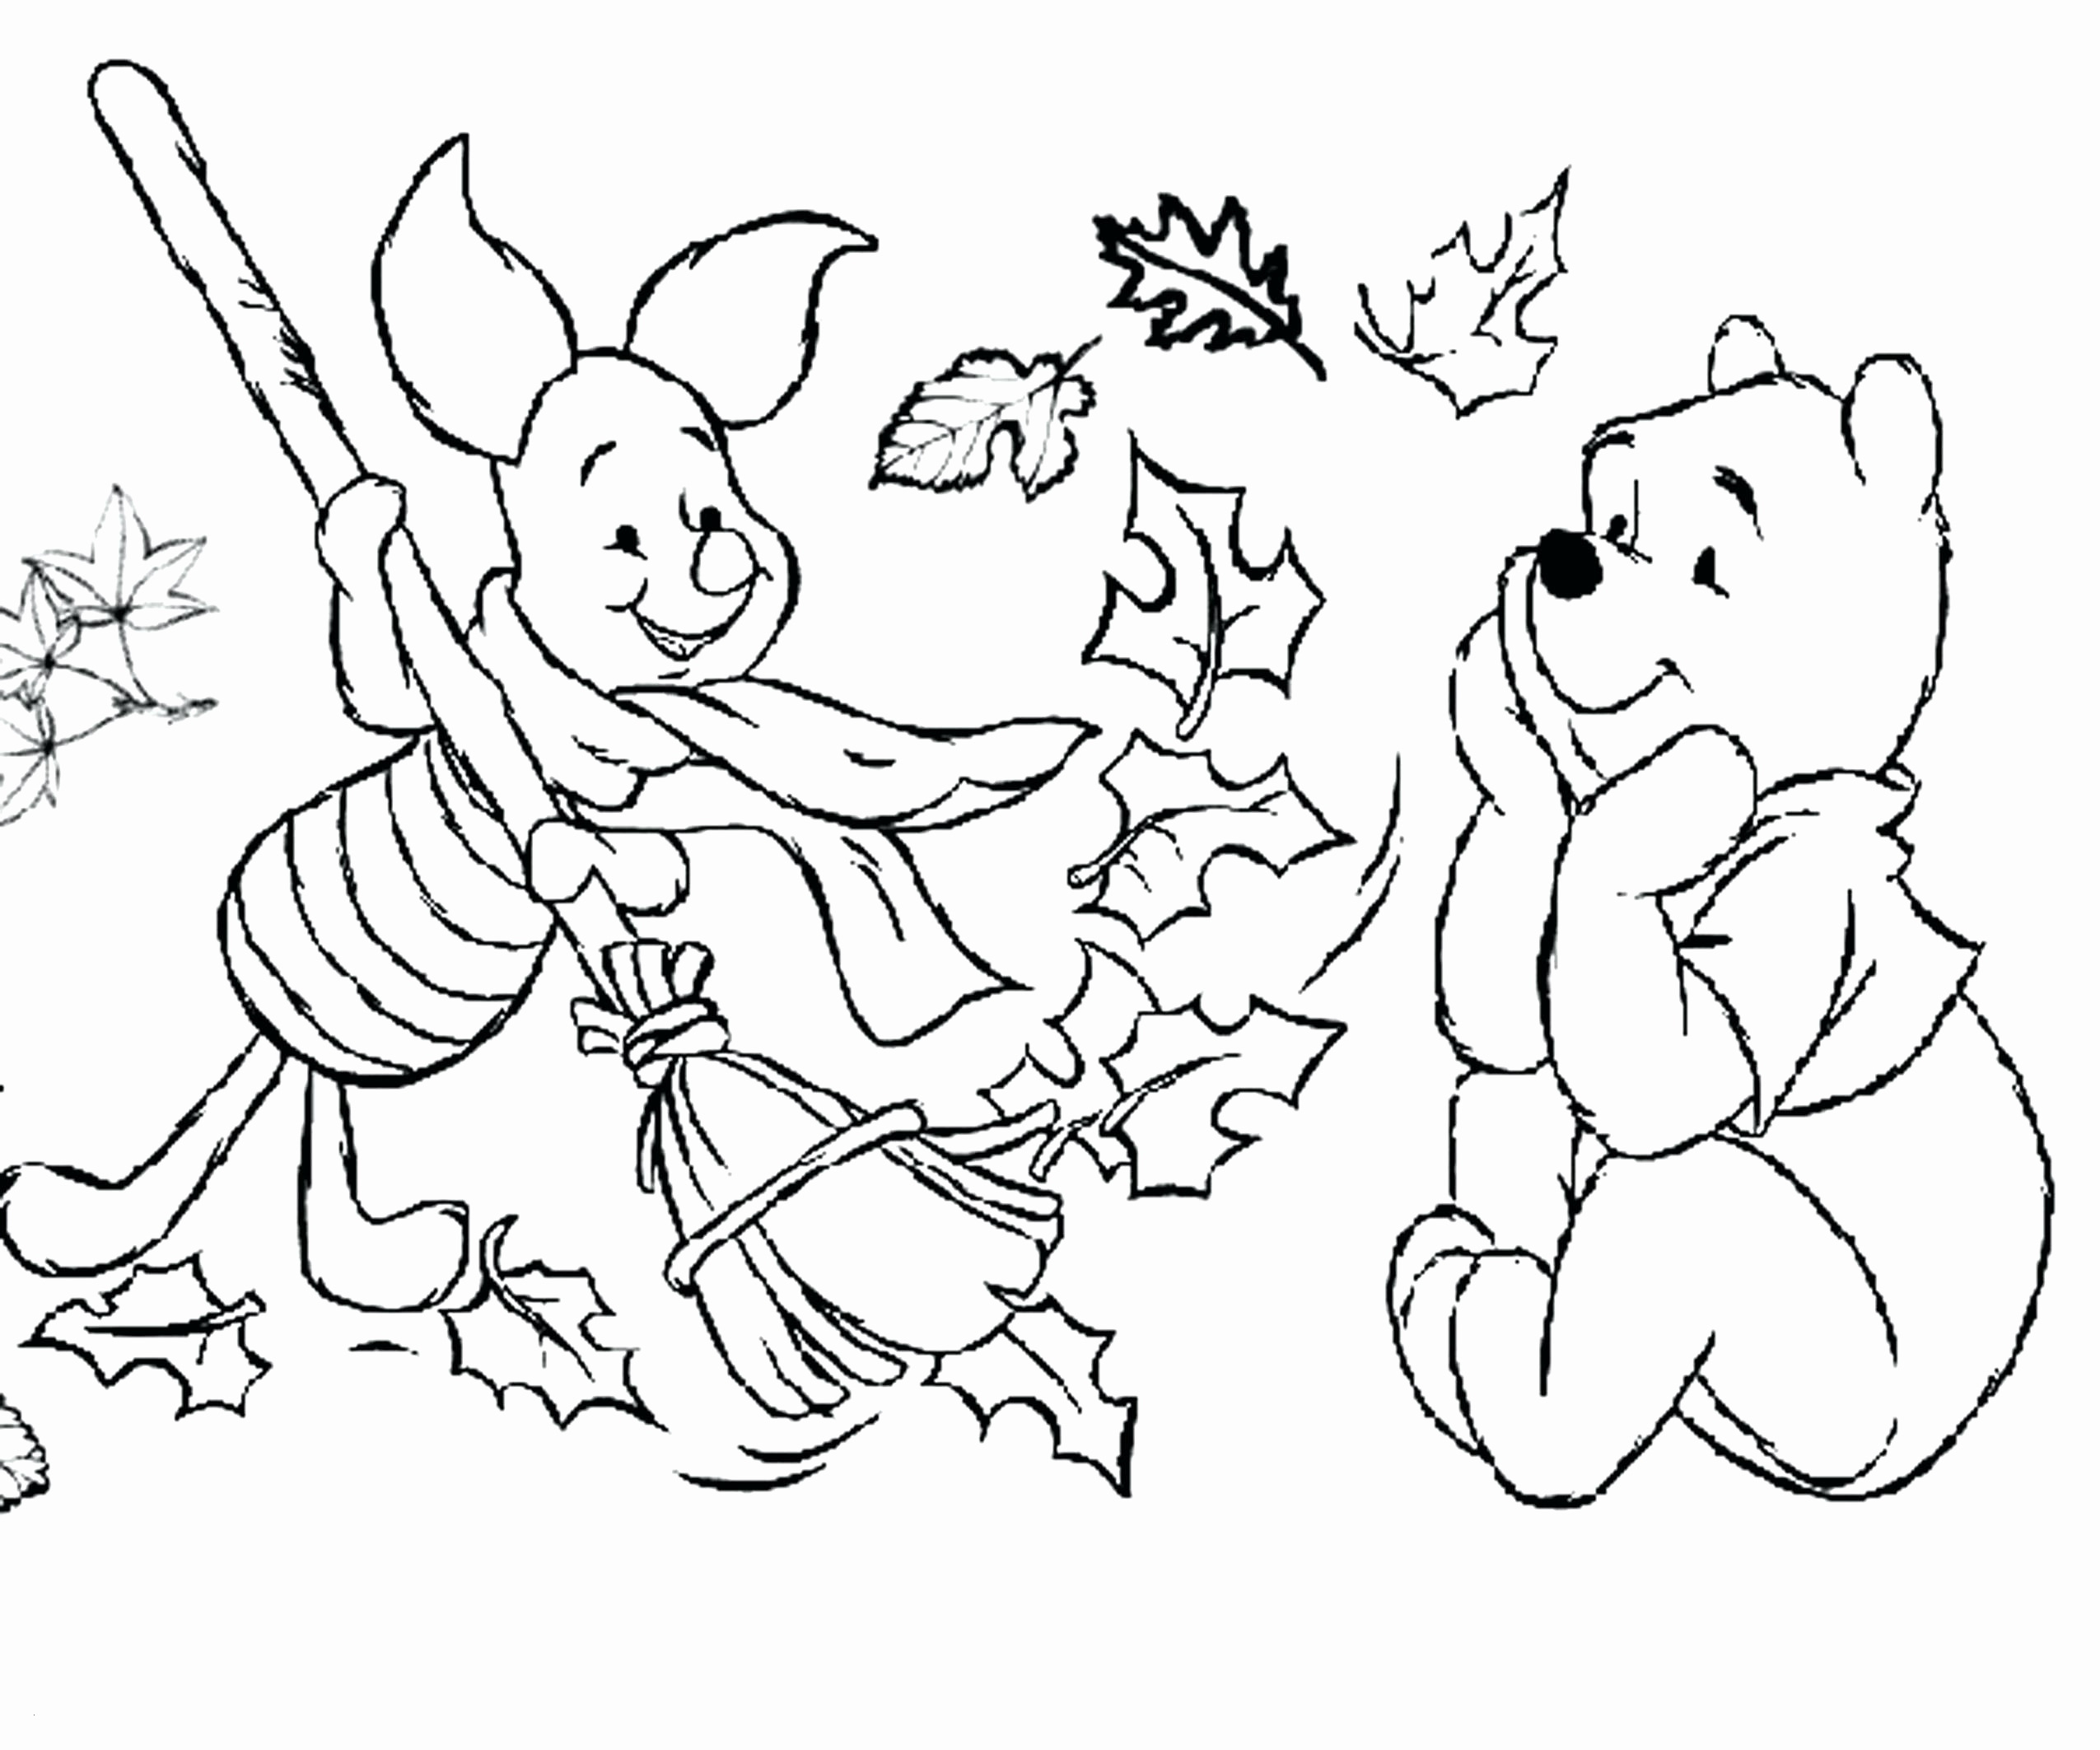 children christian coloring pages Collection-Music Notes Coloring Page Coloring Pages for Children Great Preschool Fall Coloring Pages 0d 8-l